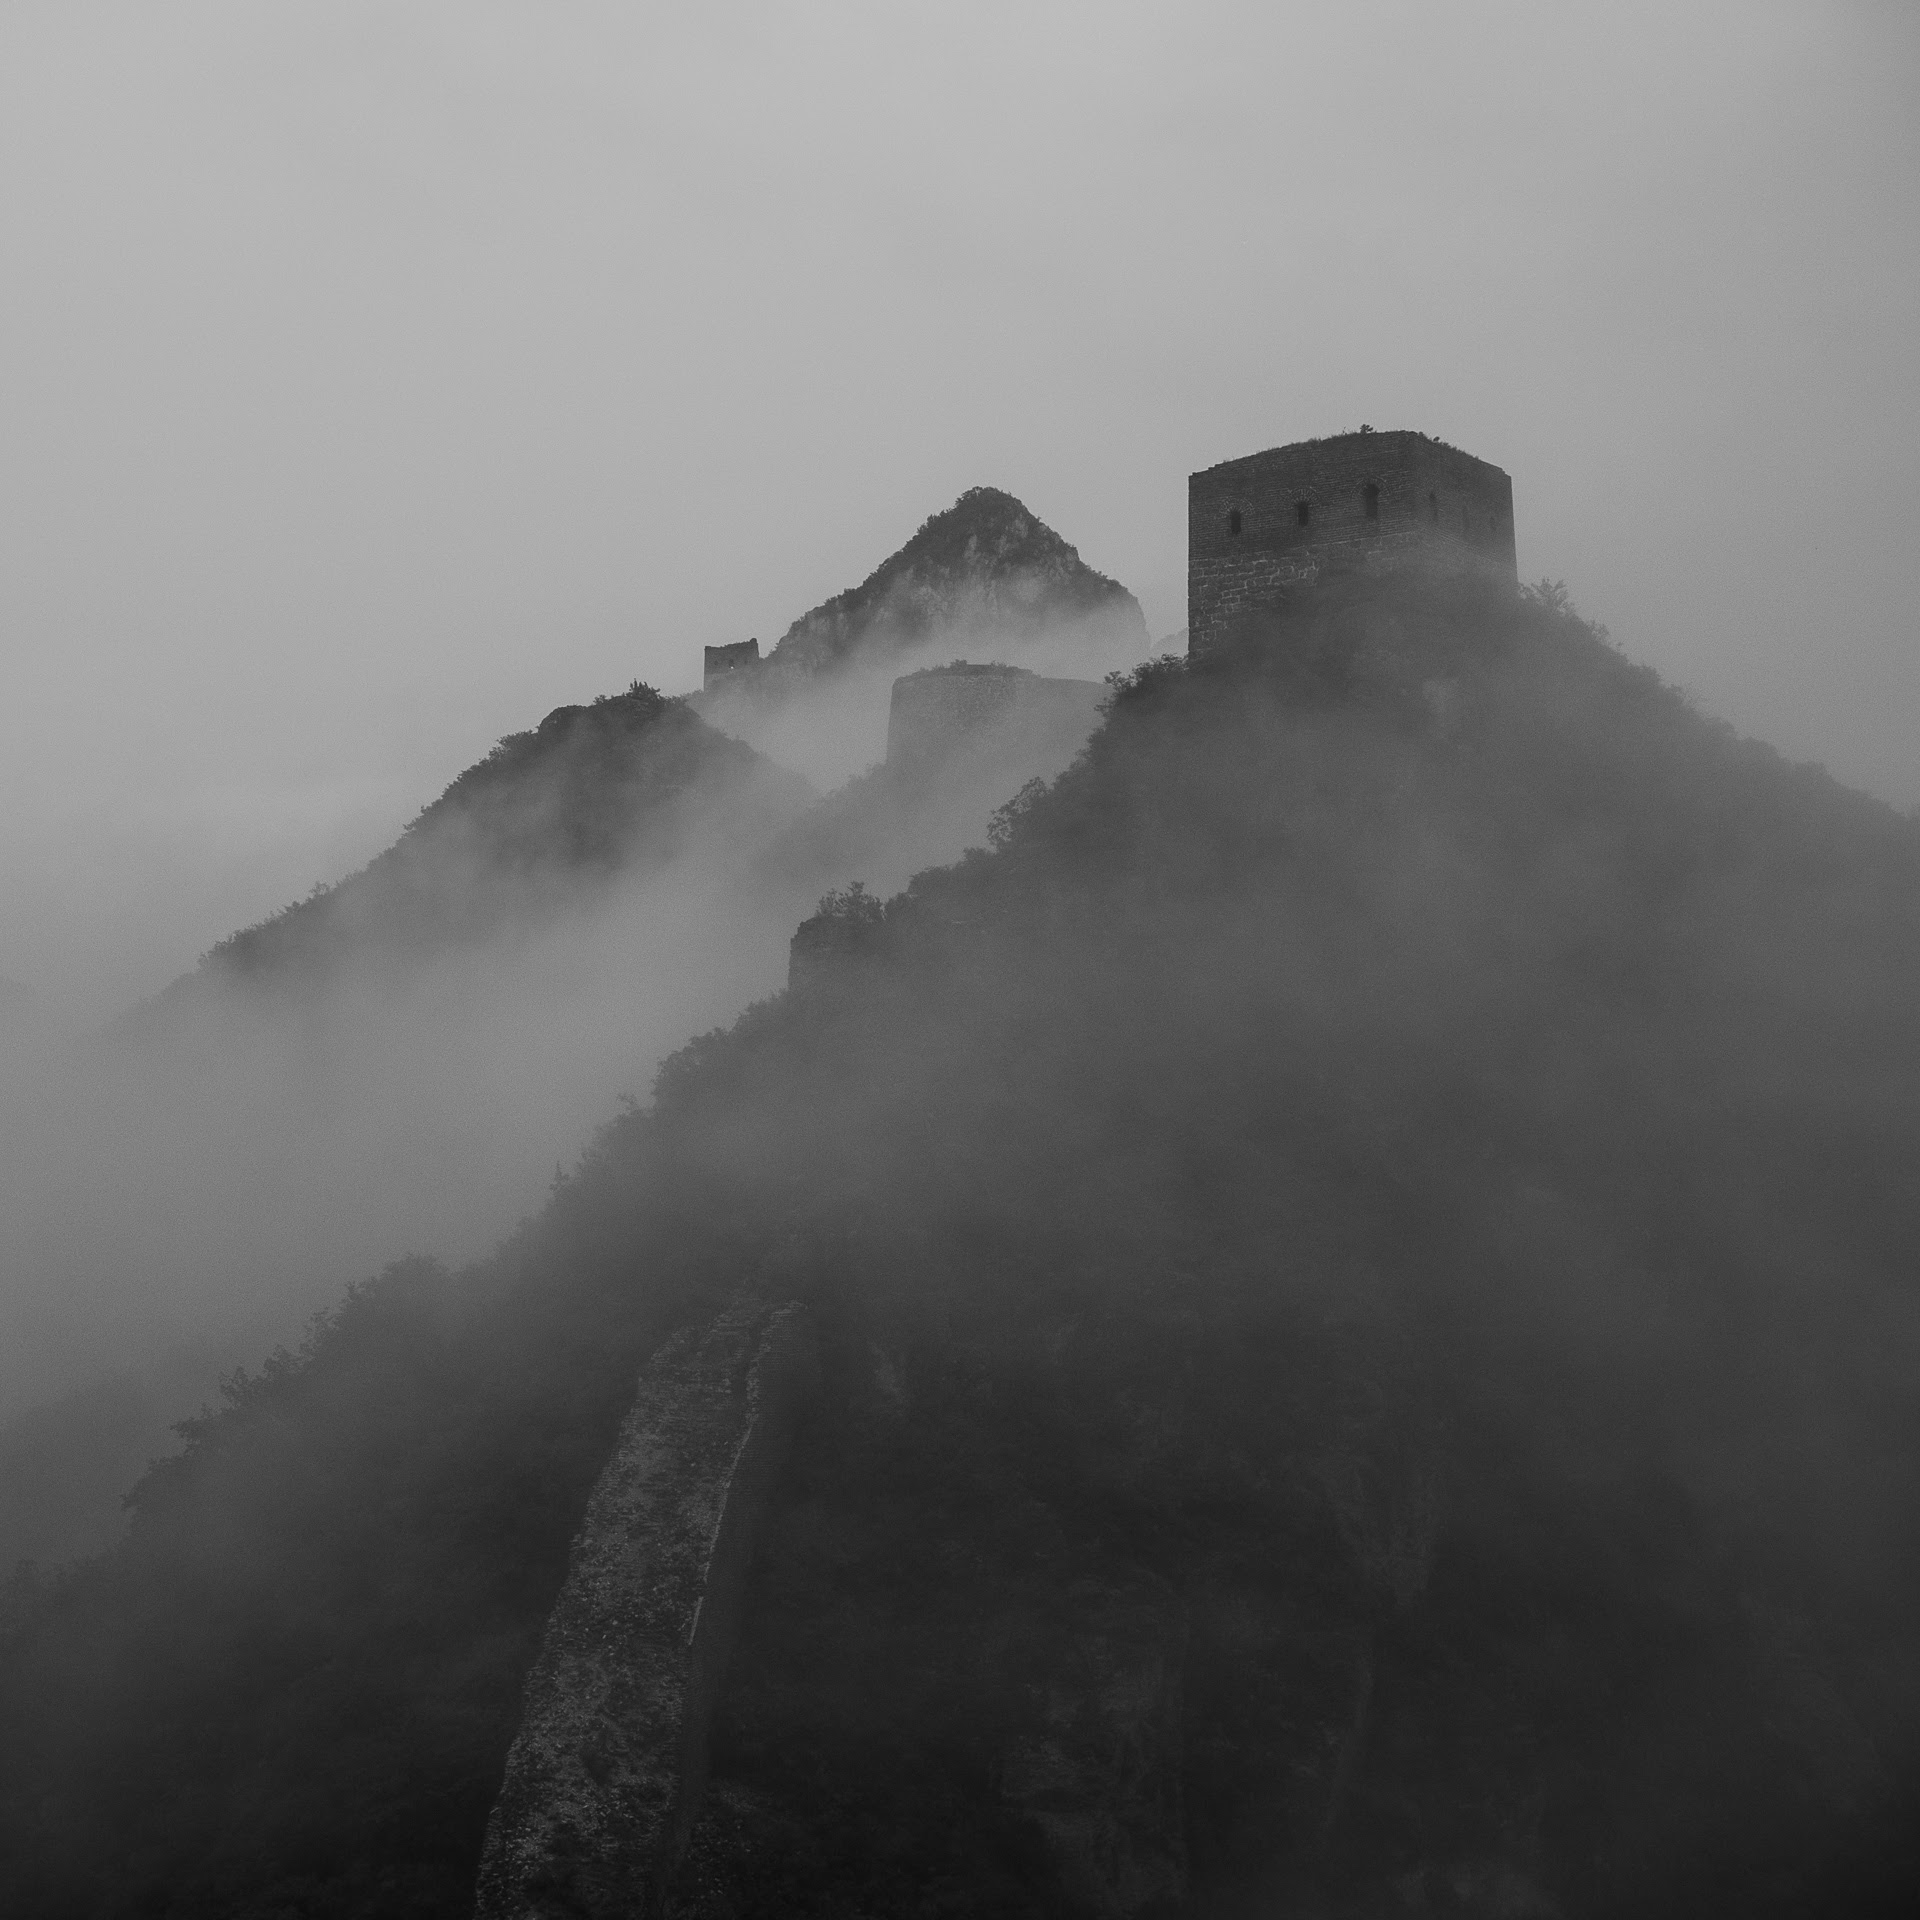 Watch tower of the Great Wall of China at Wuhanshan